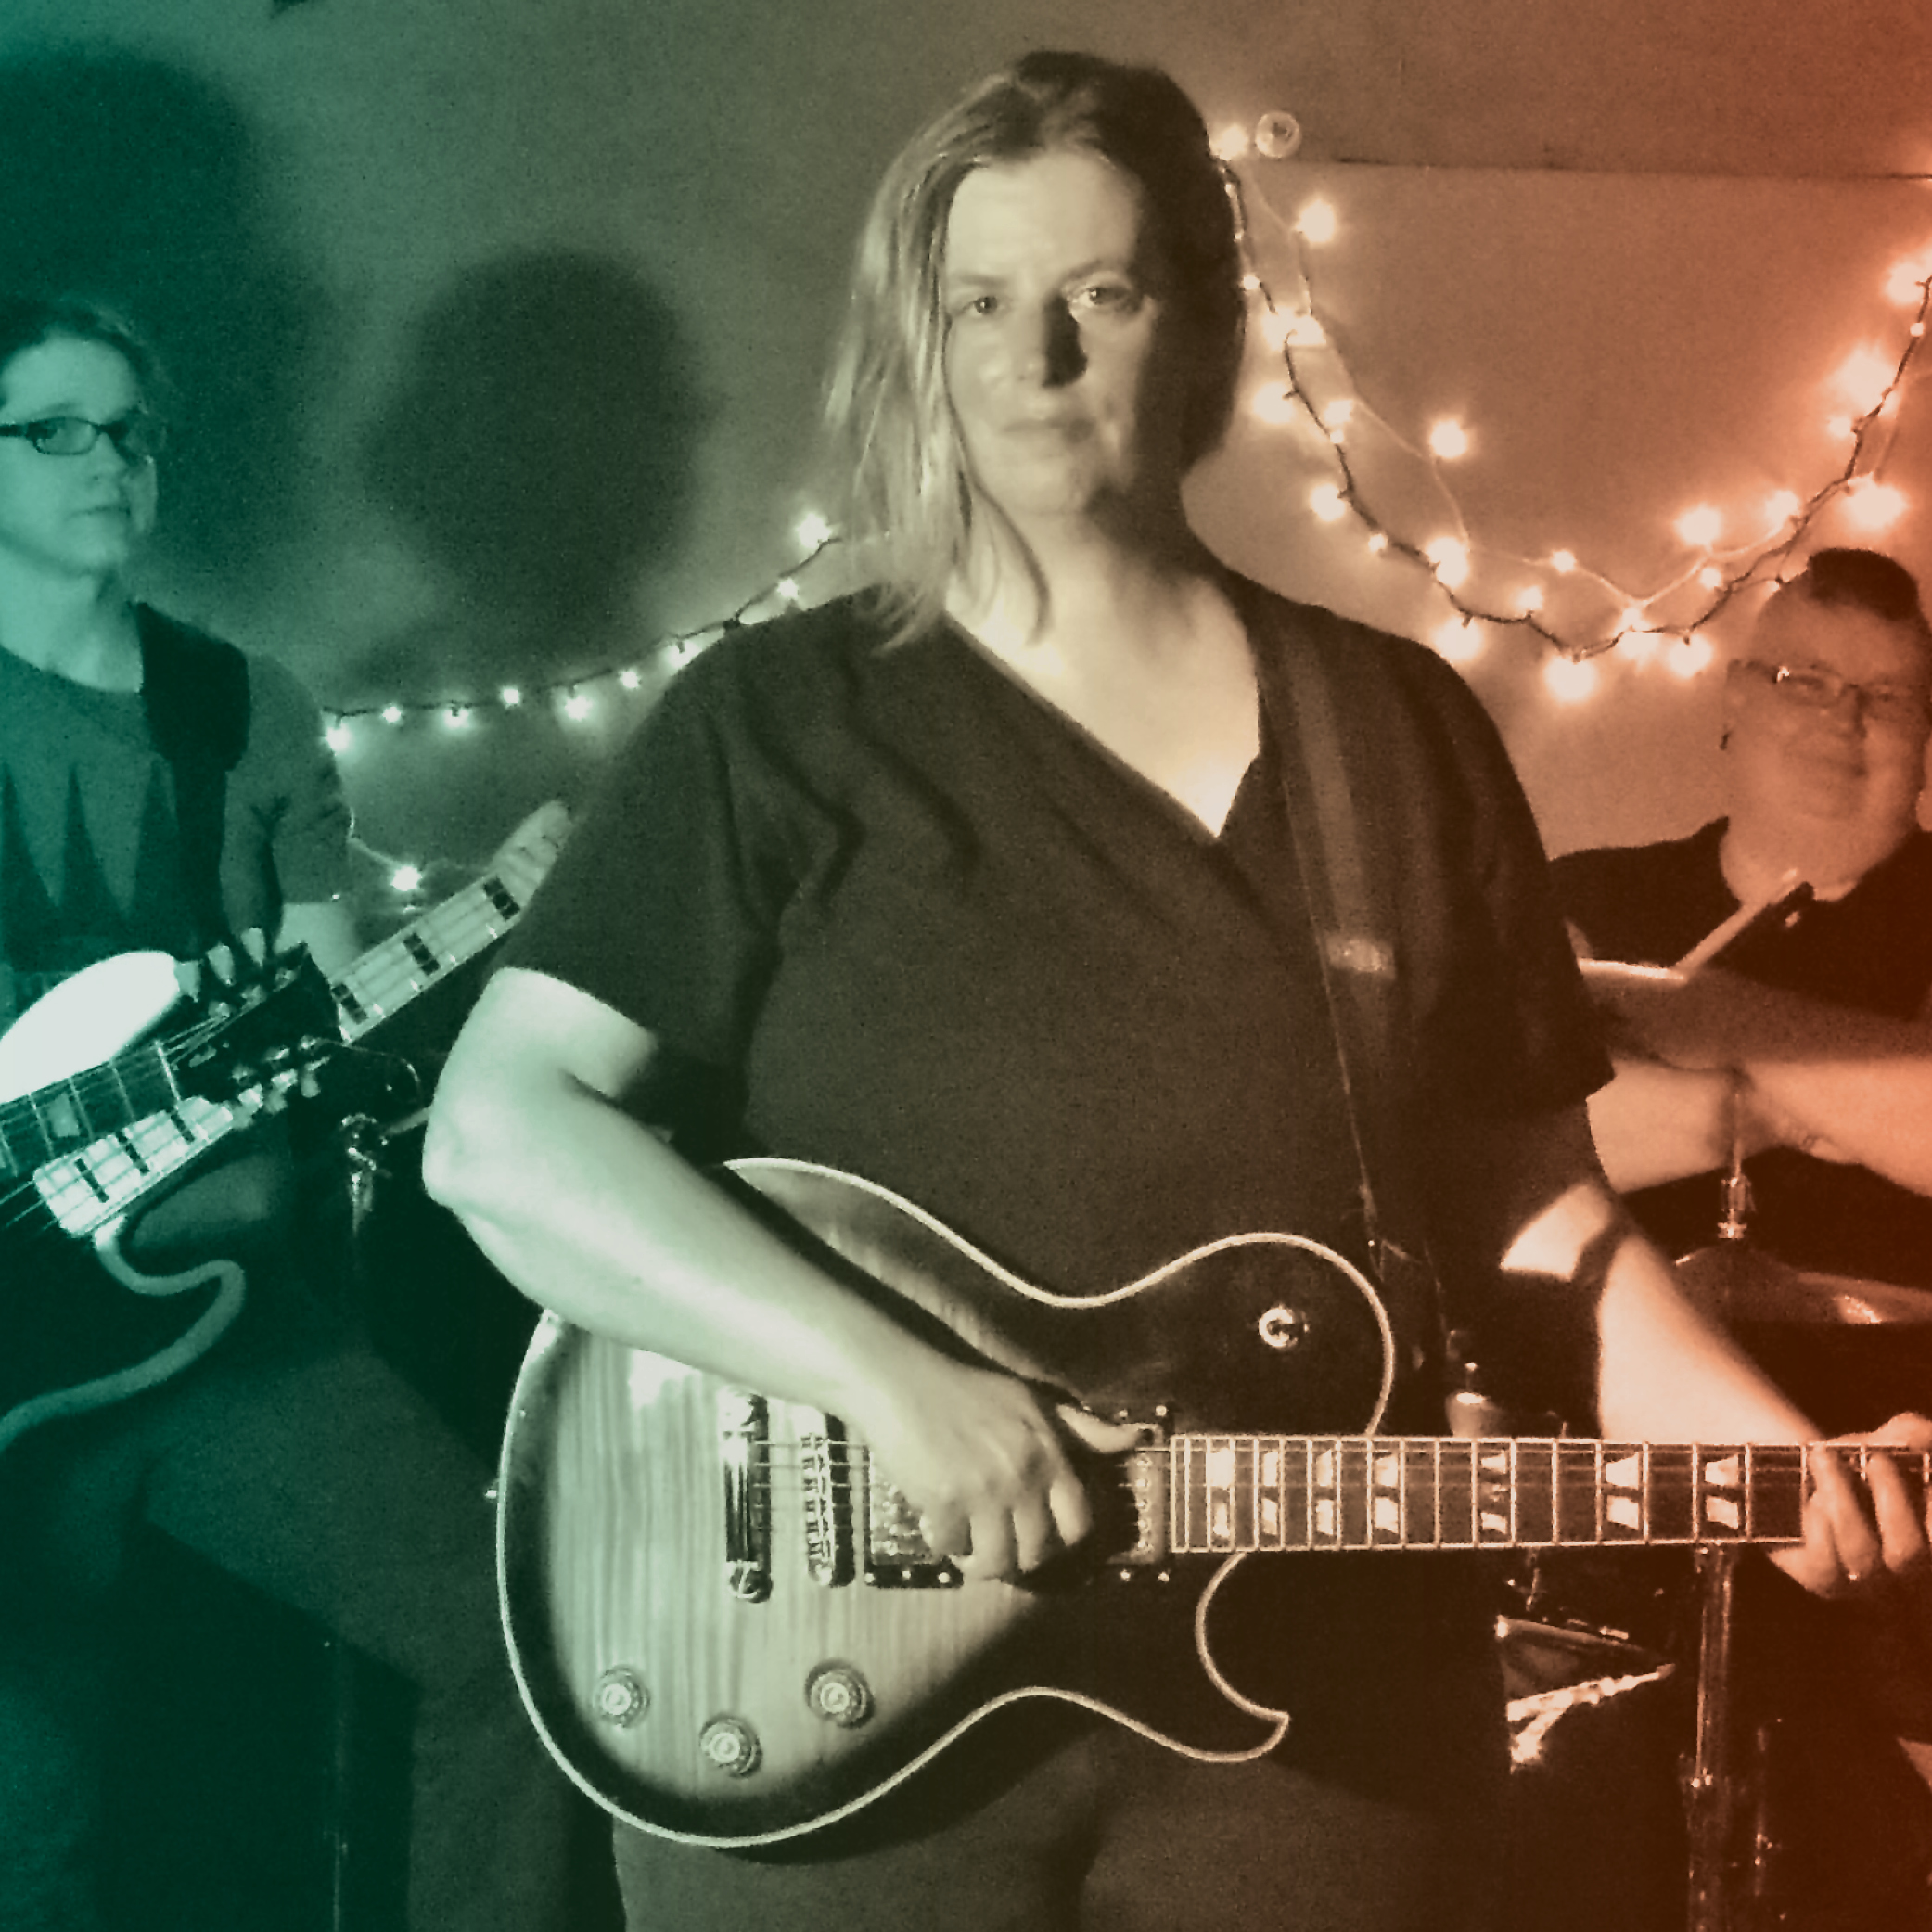 Life Magnetic     Saturday, September 14     7:30-8:30 p.m.     Heights Arts Park